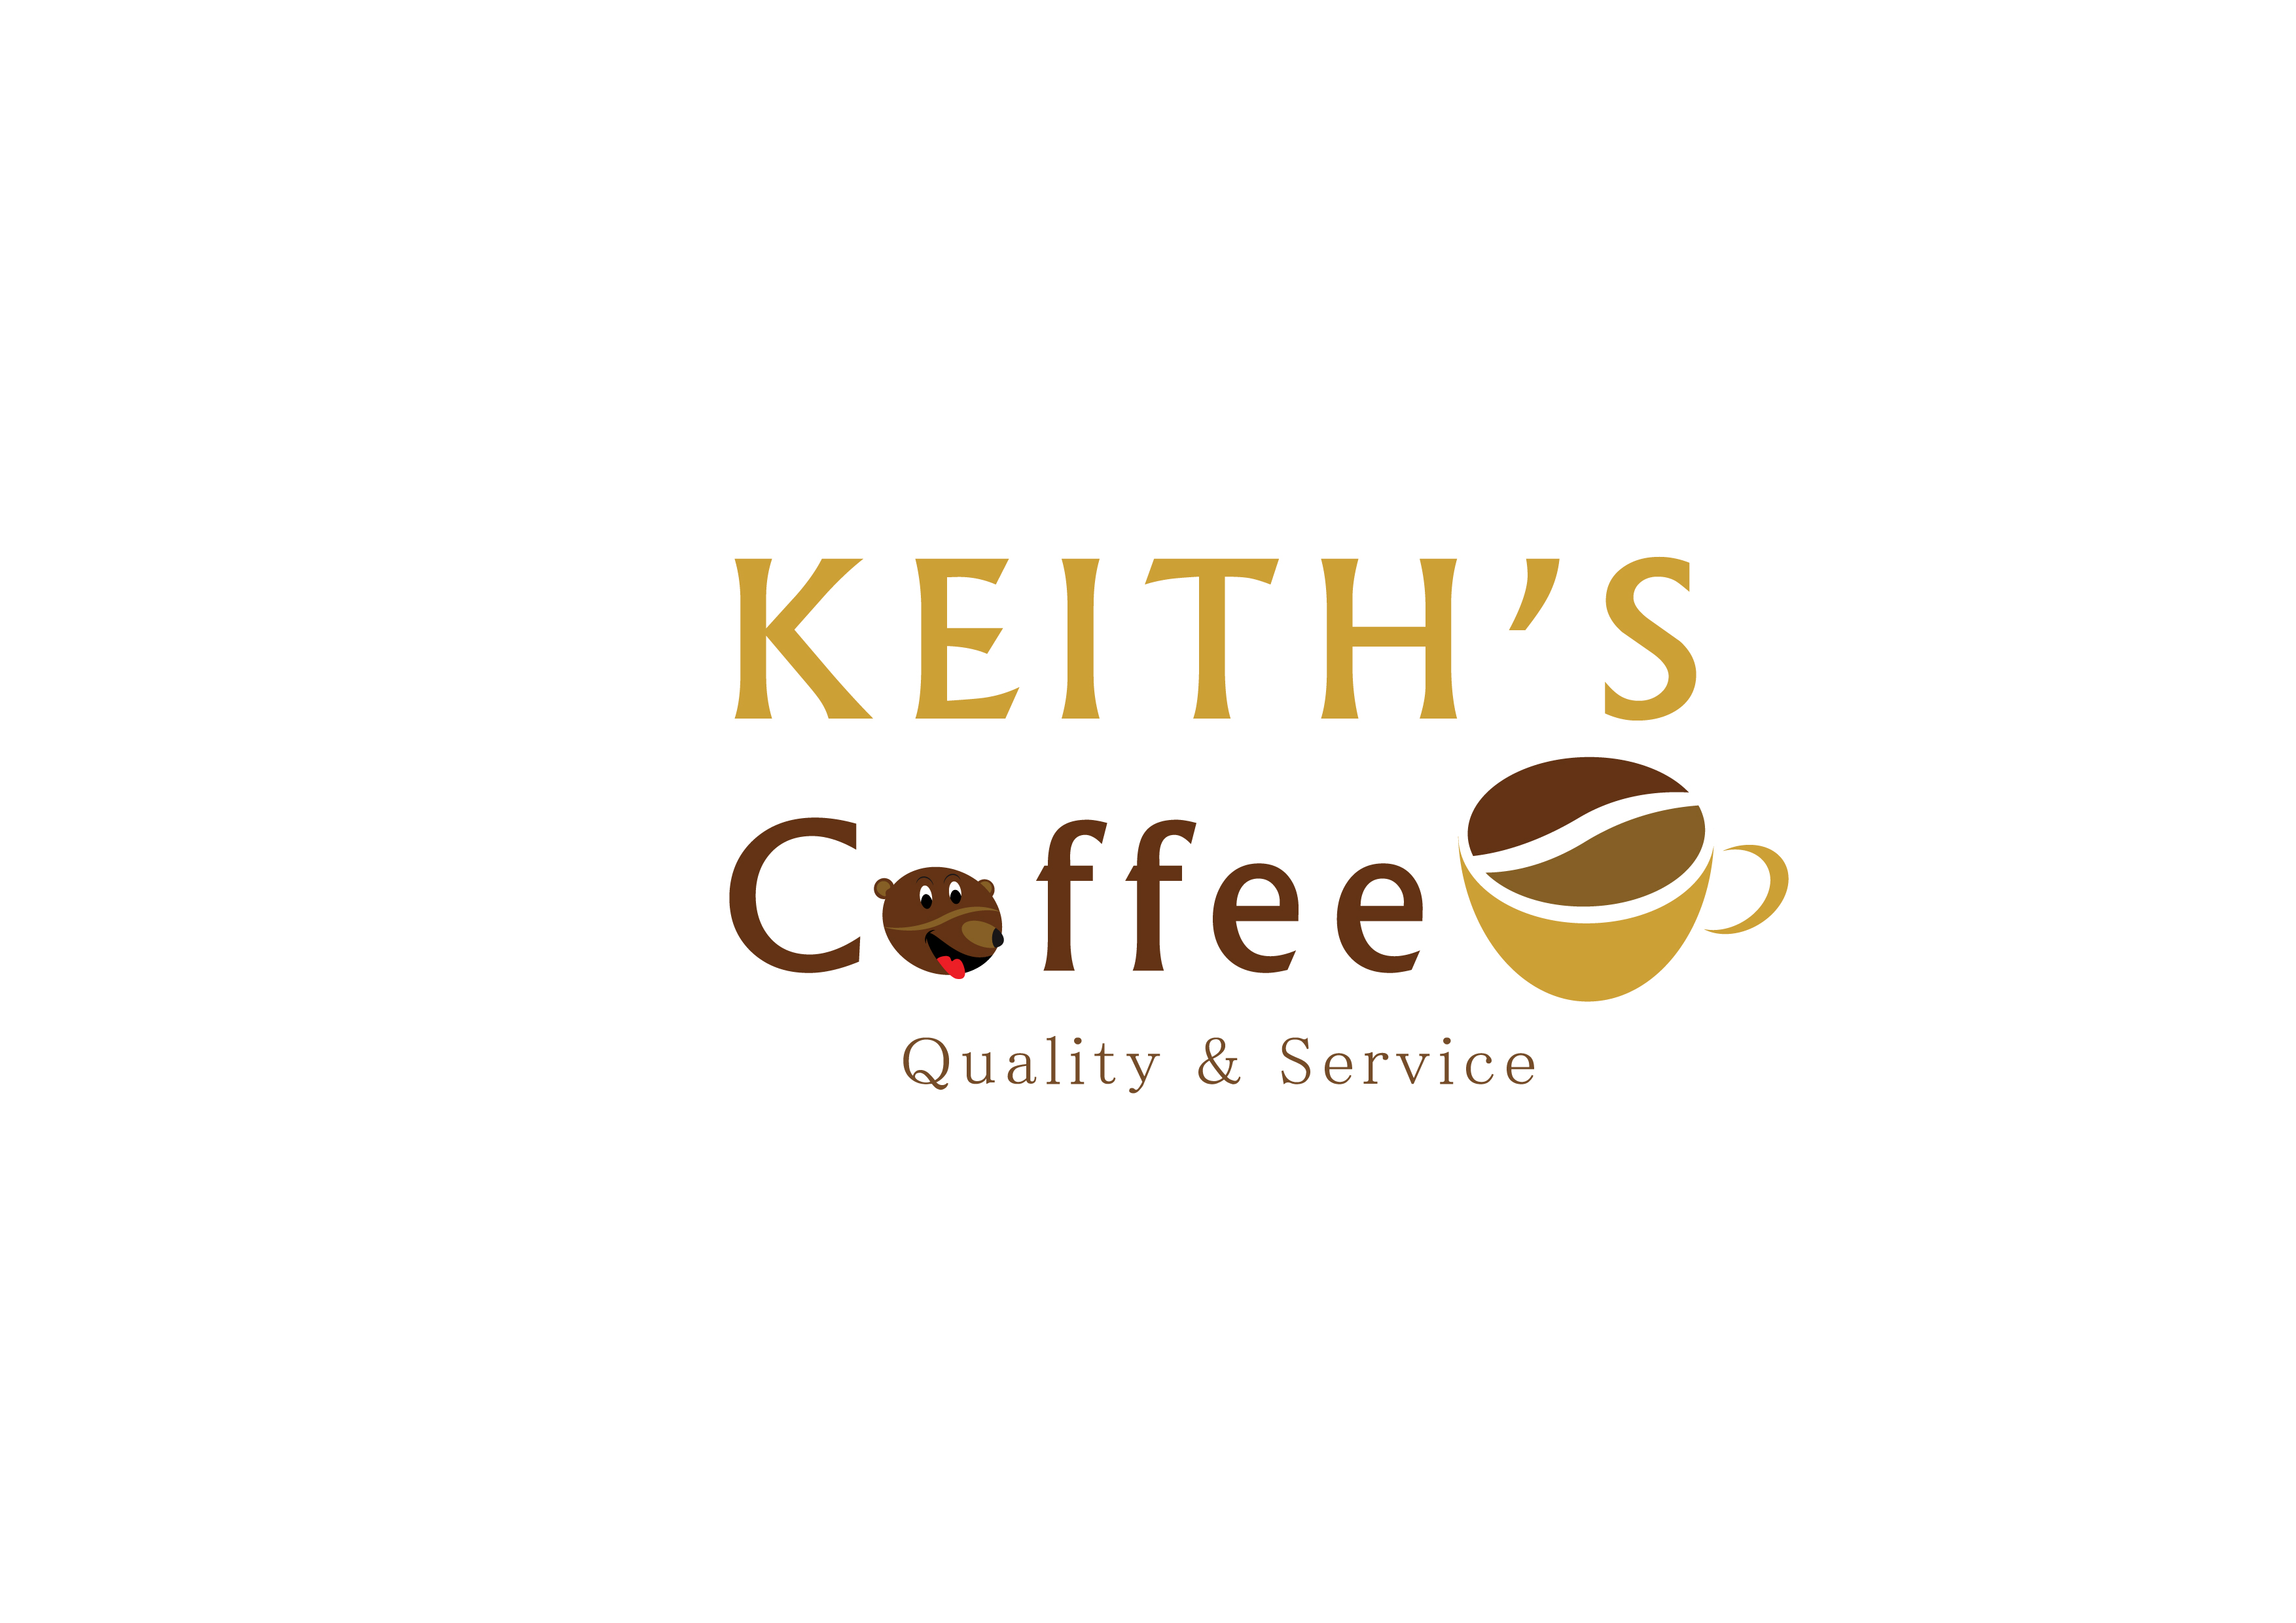 Logo Design by 3draw - Entry No. 53 in the Logo Design Contest Keef's coffee Logo Design.